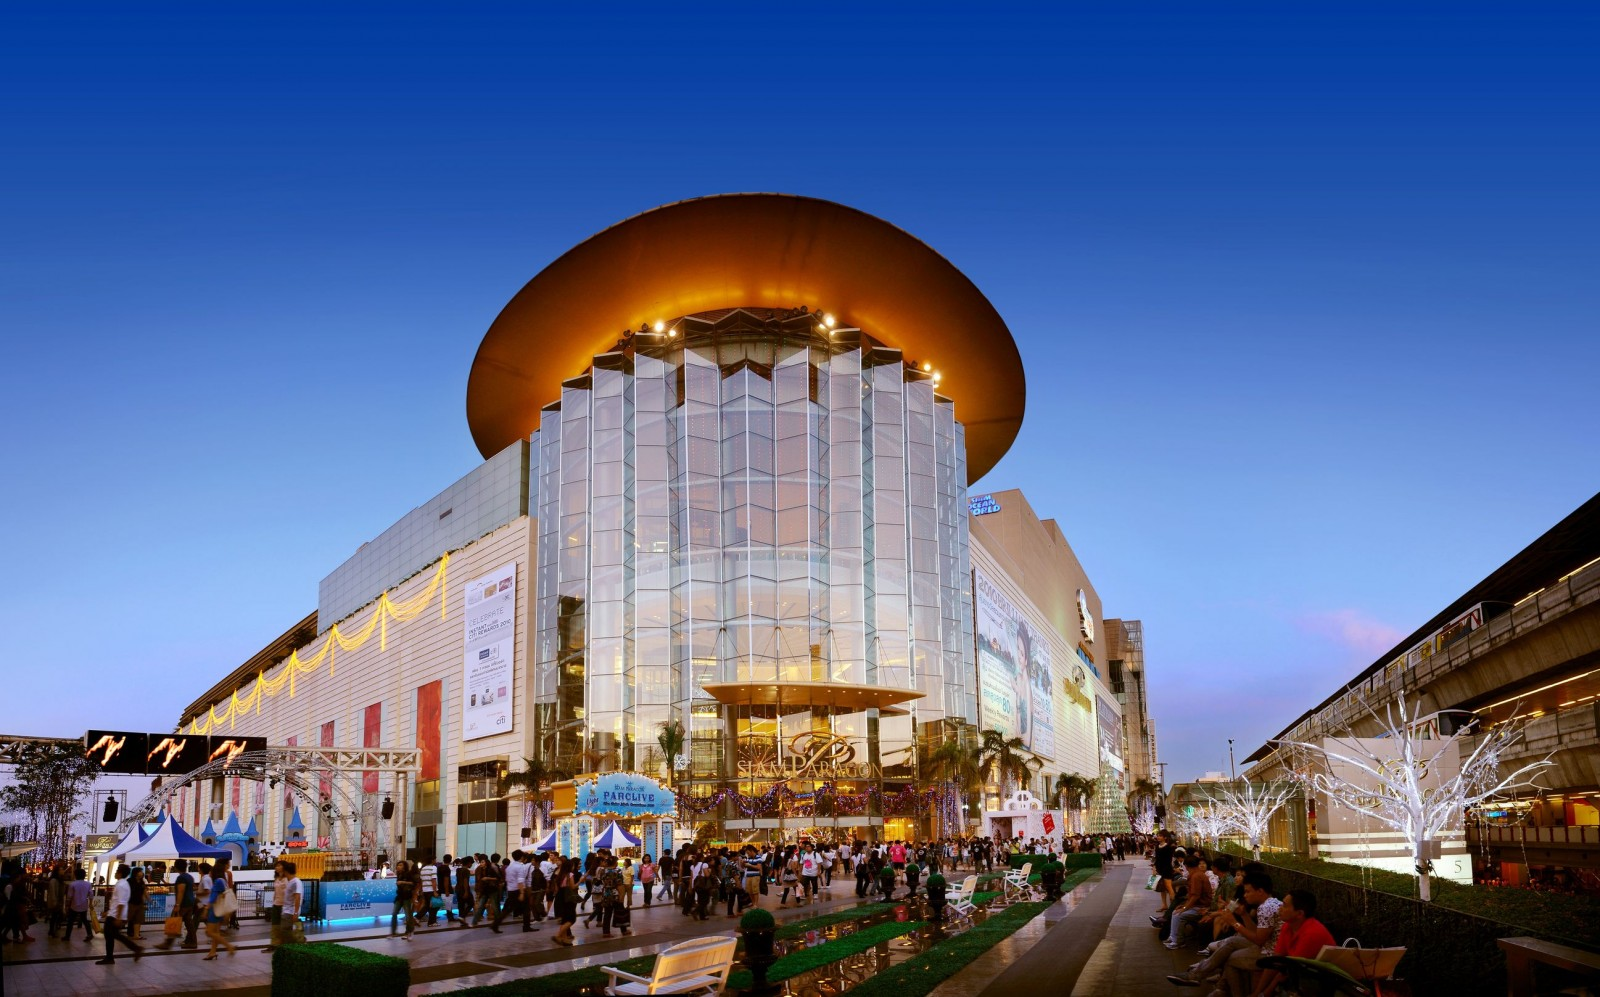 siam-paragon-shopping-mall-in-bangkok-thailand